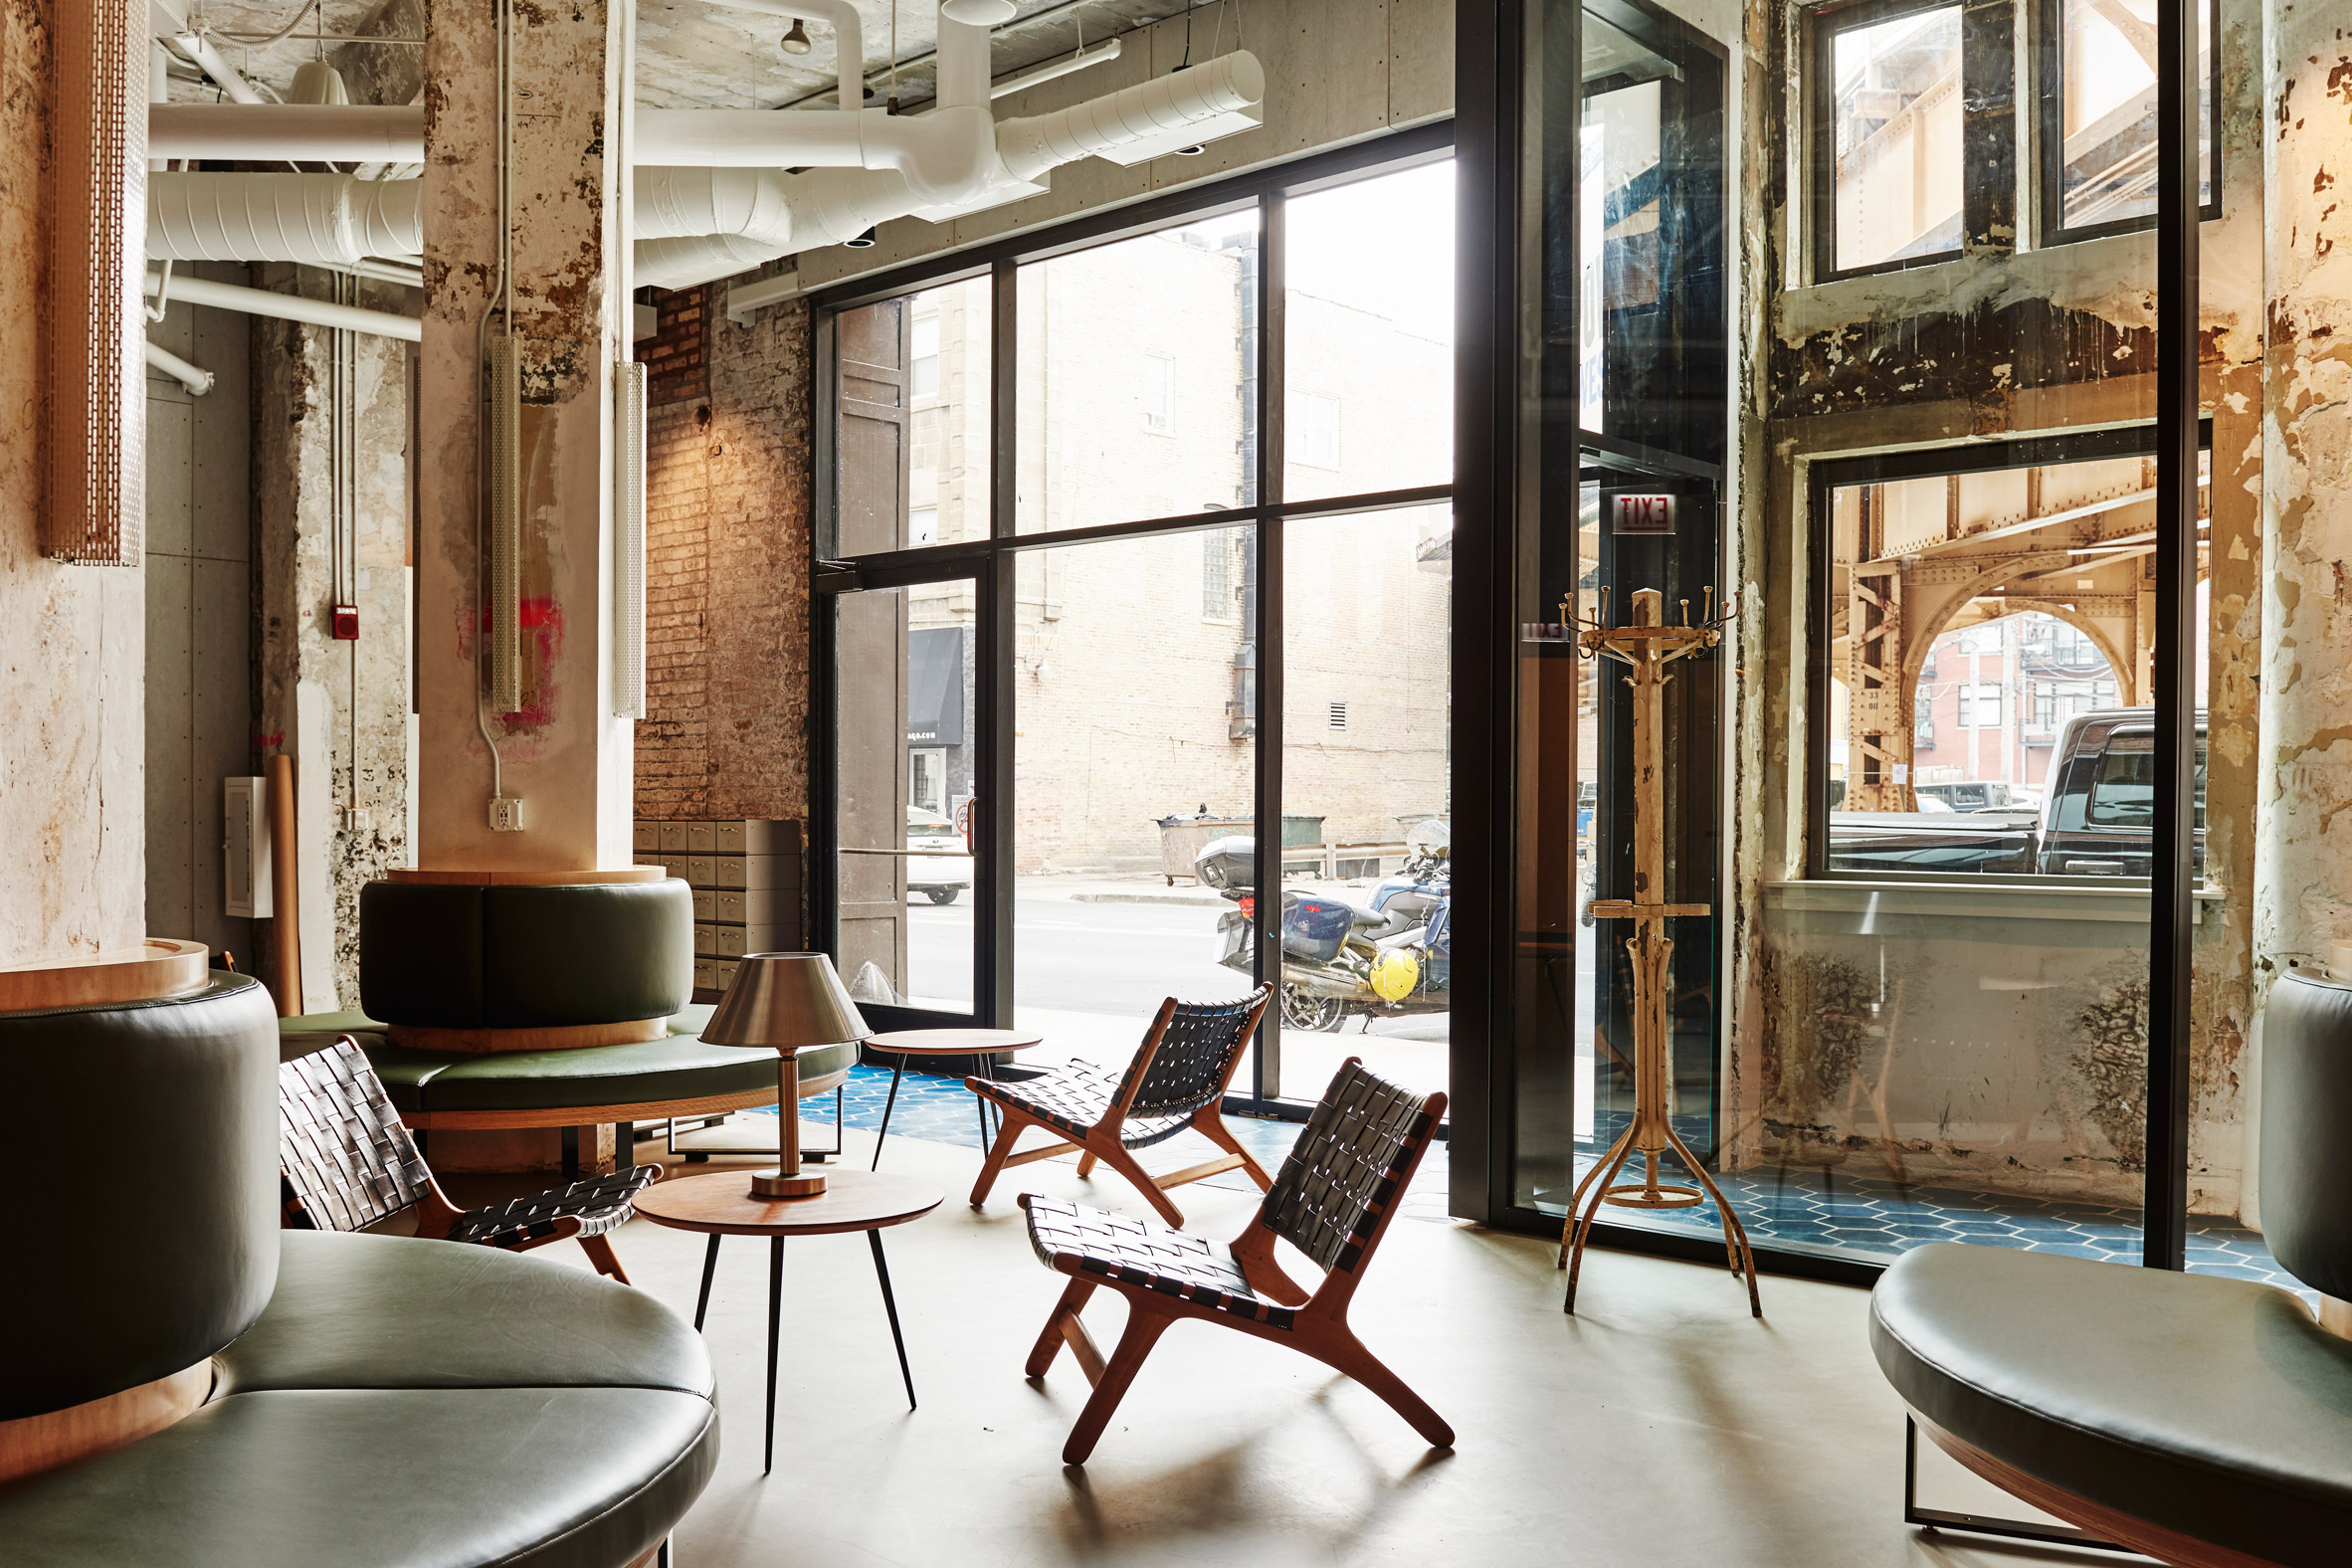 curbed archives - interior design - page 1